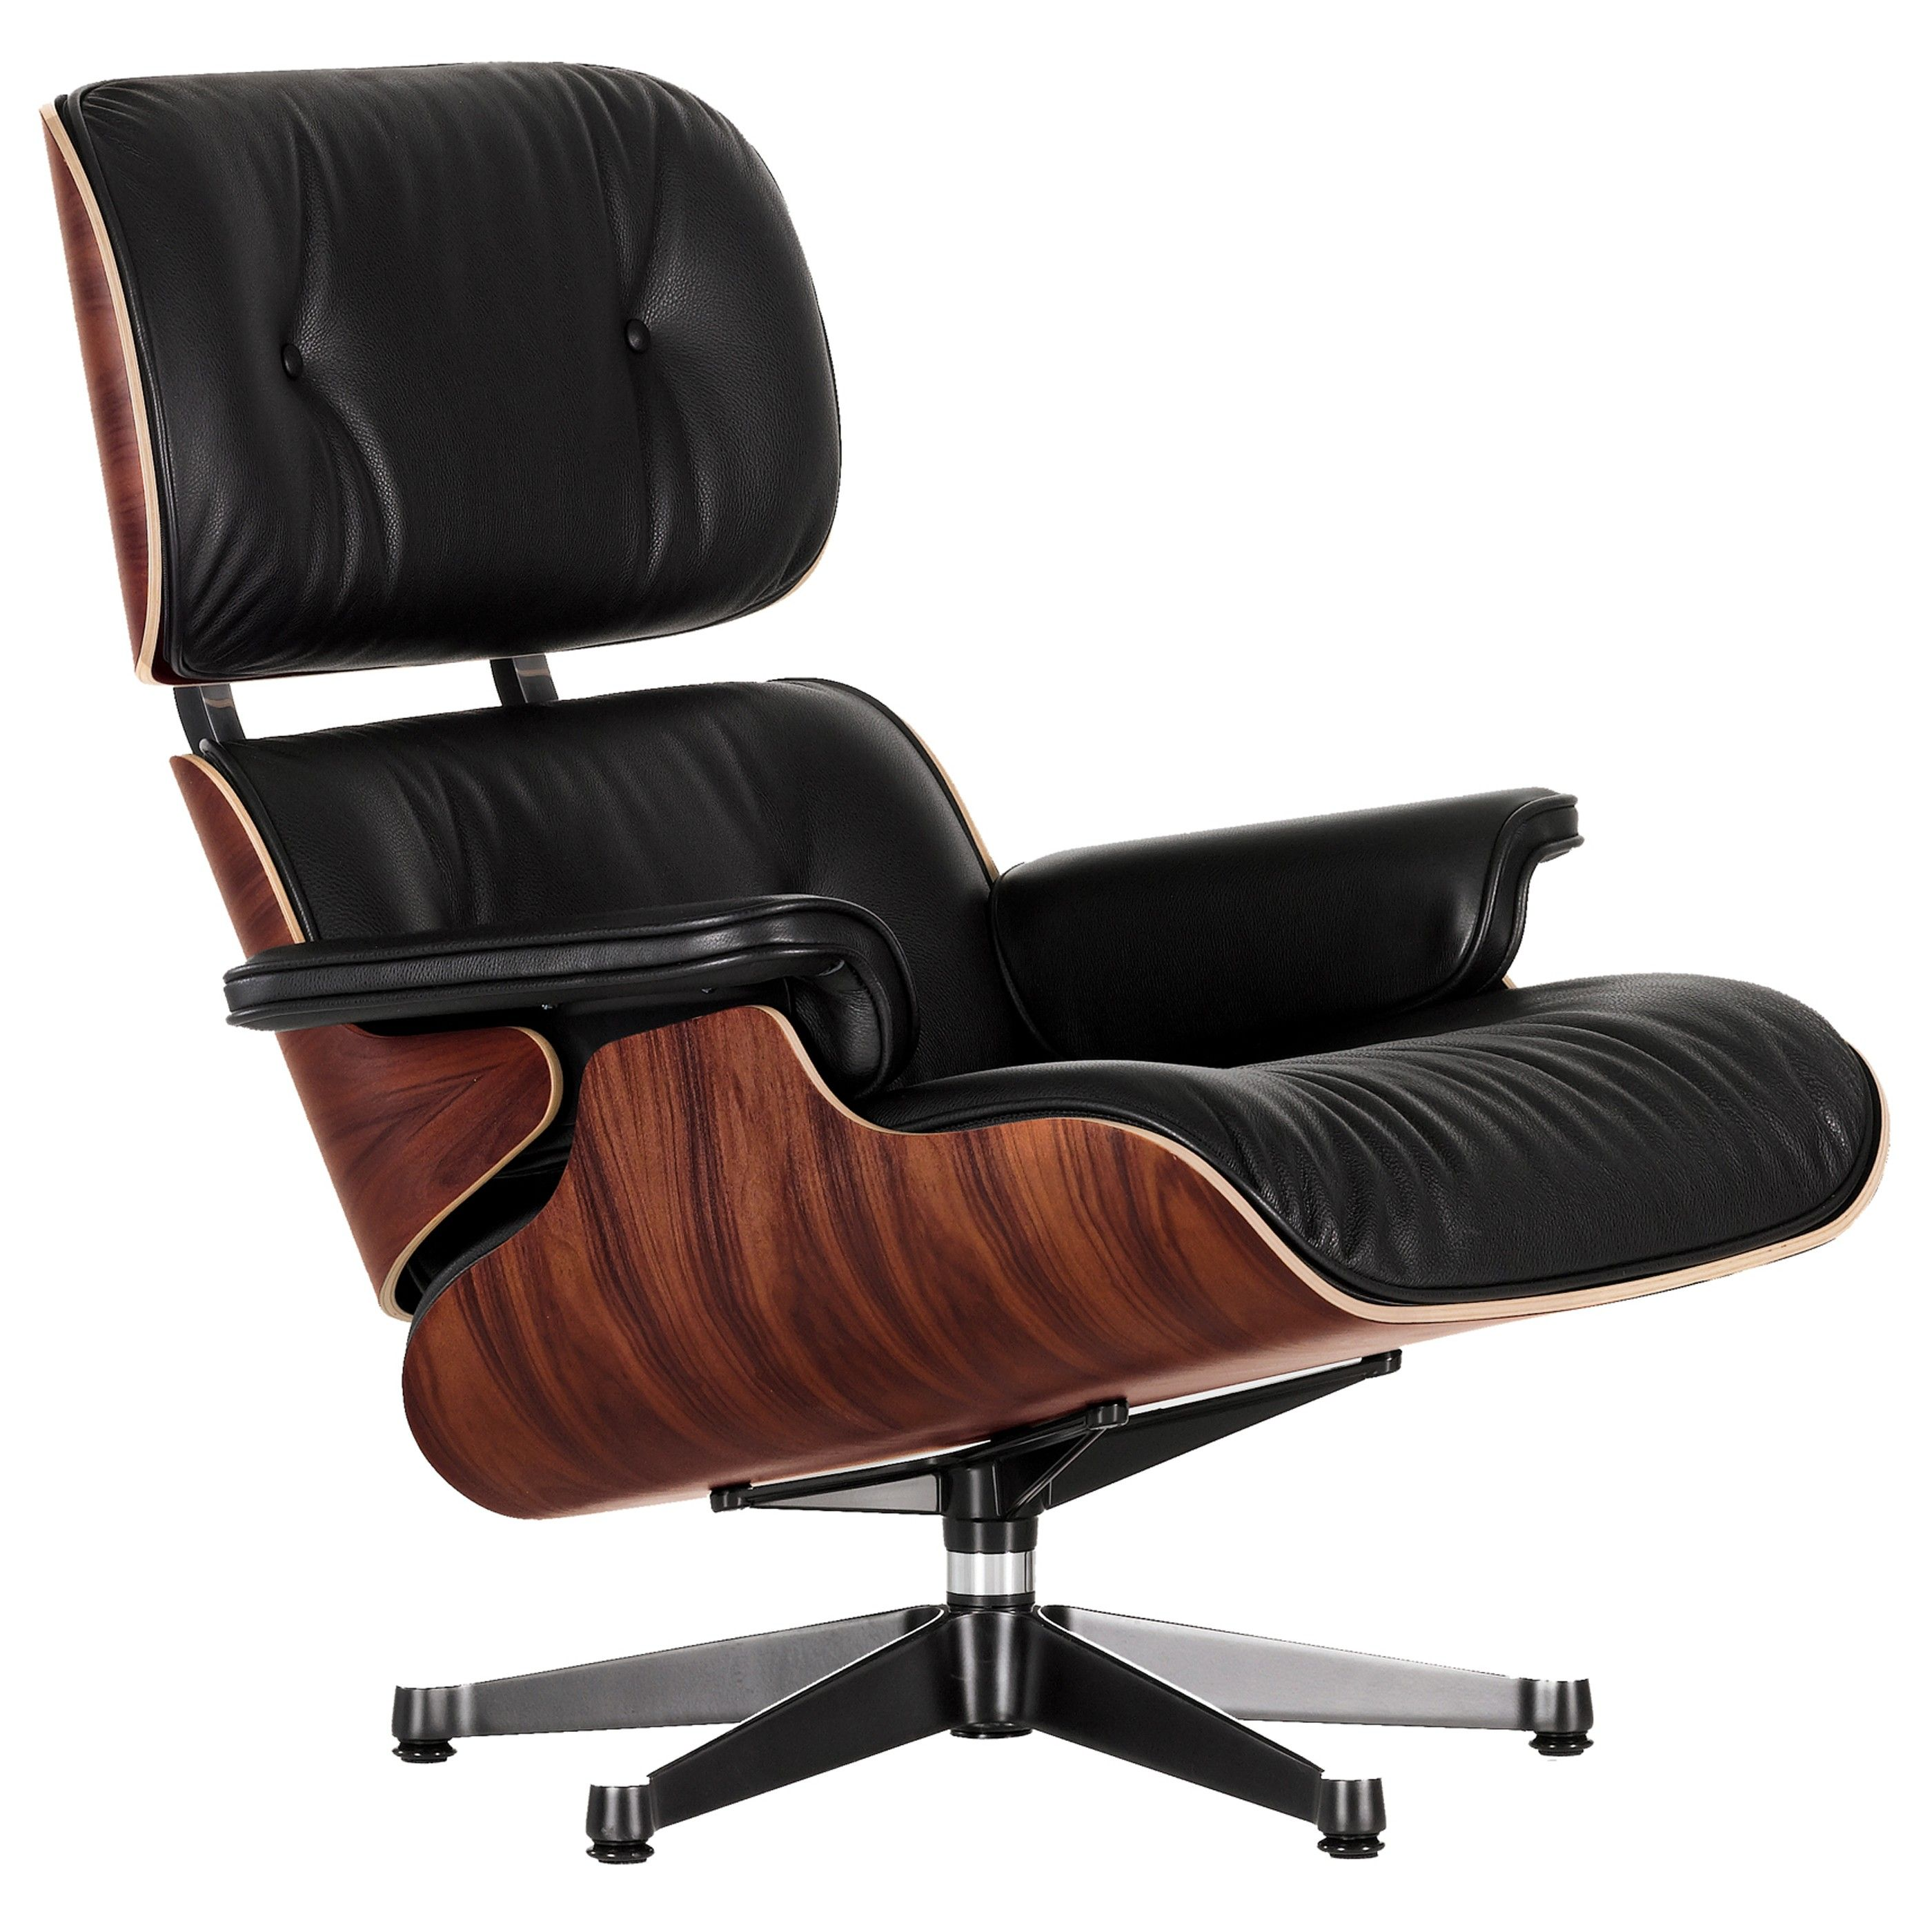 Vitra Eames Vitra Eames Lounge Chair Fauteuil Santos Palisander